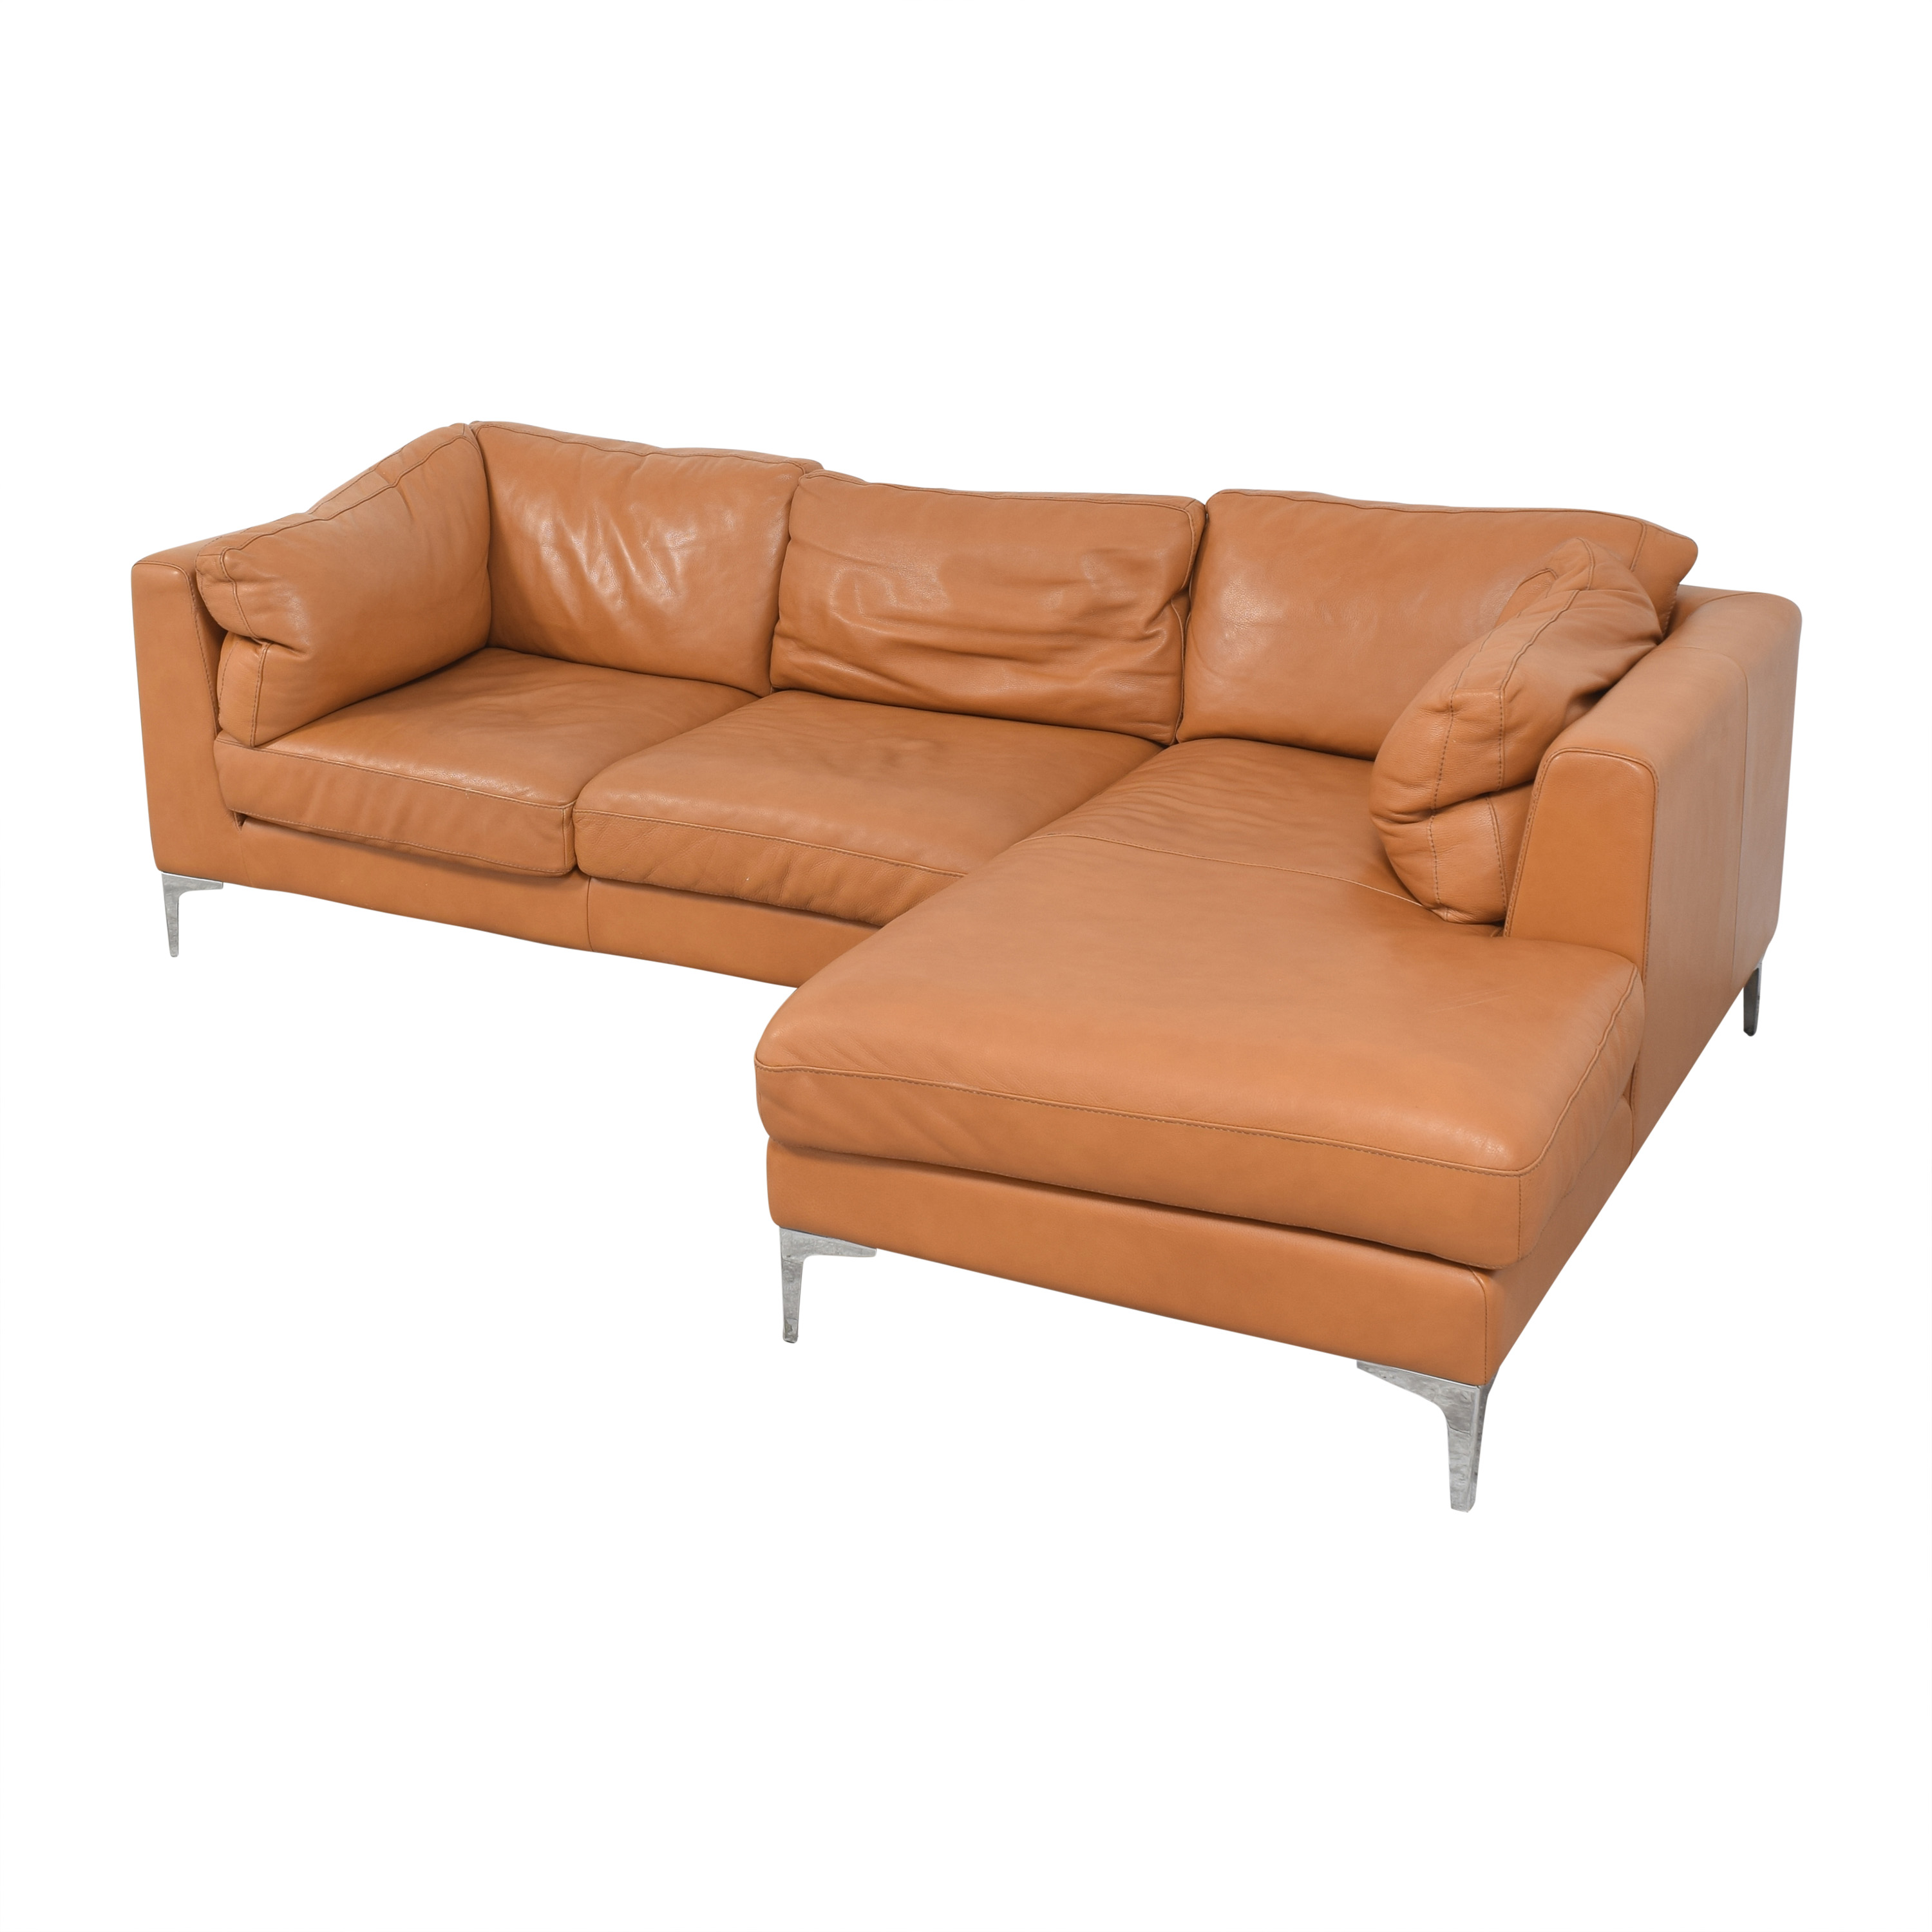 Design Within Reach Design Within Reach Albert Sectional Sofa used